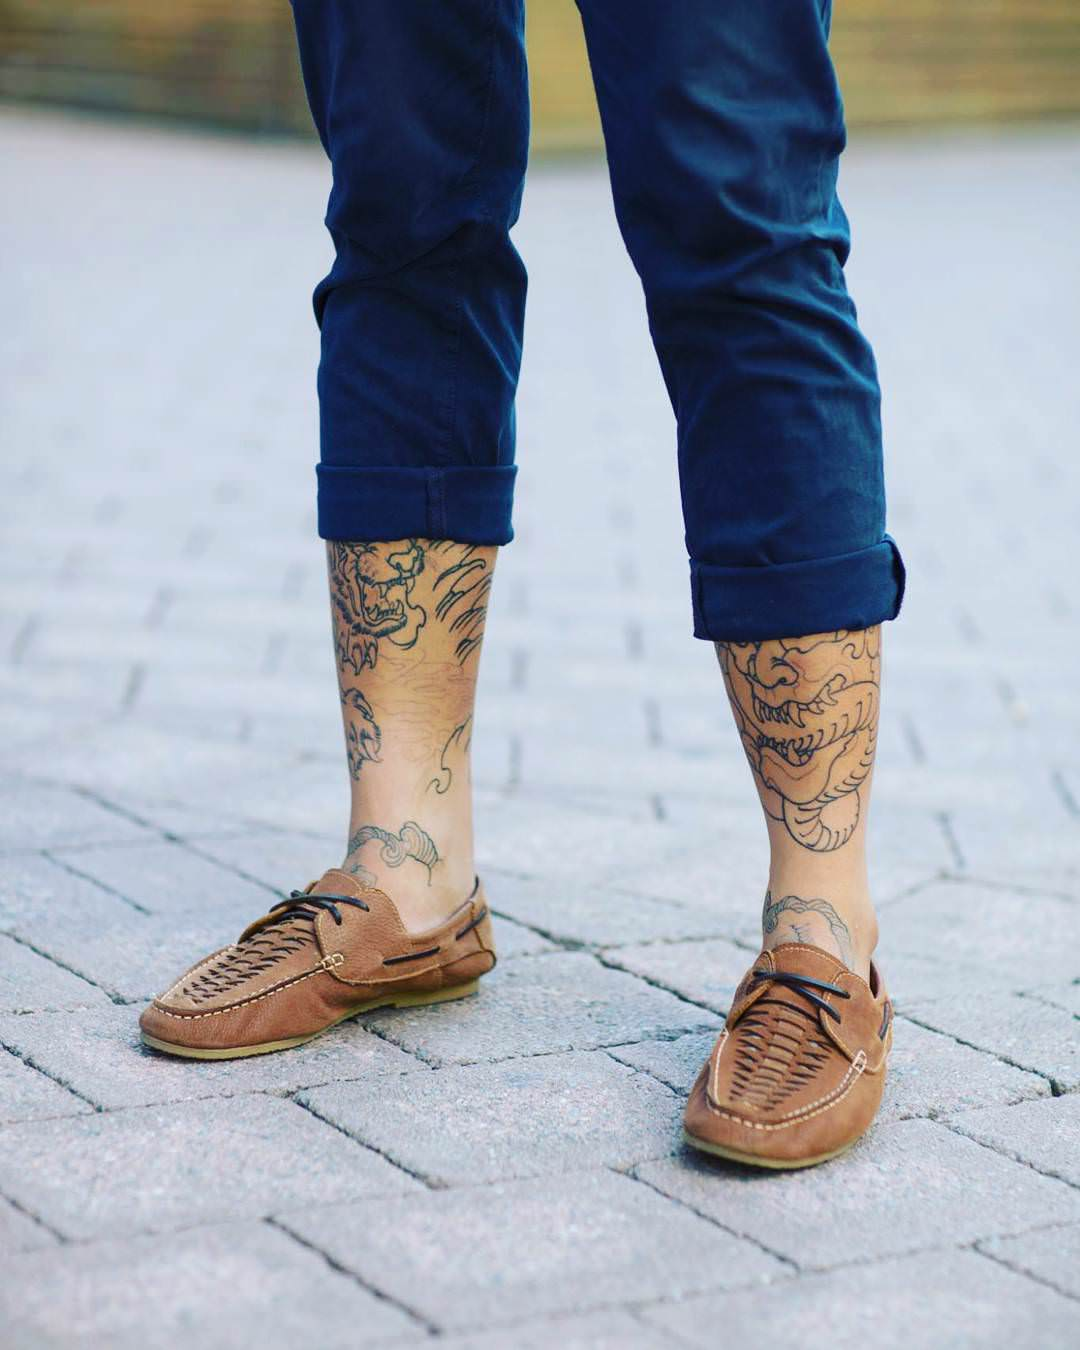 Lines Leg Sleeve Tattoo